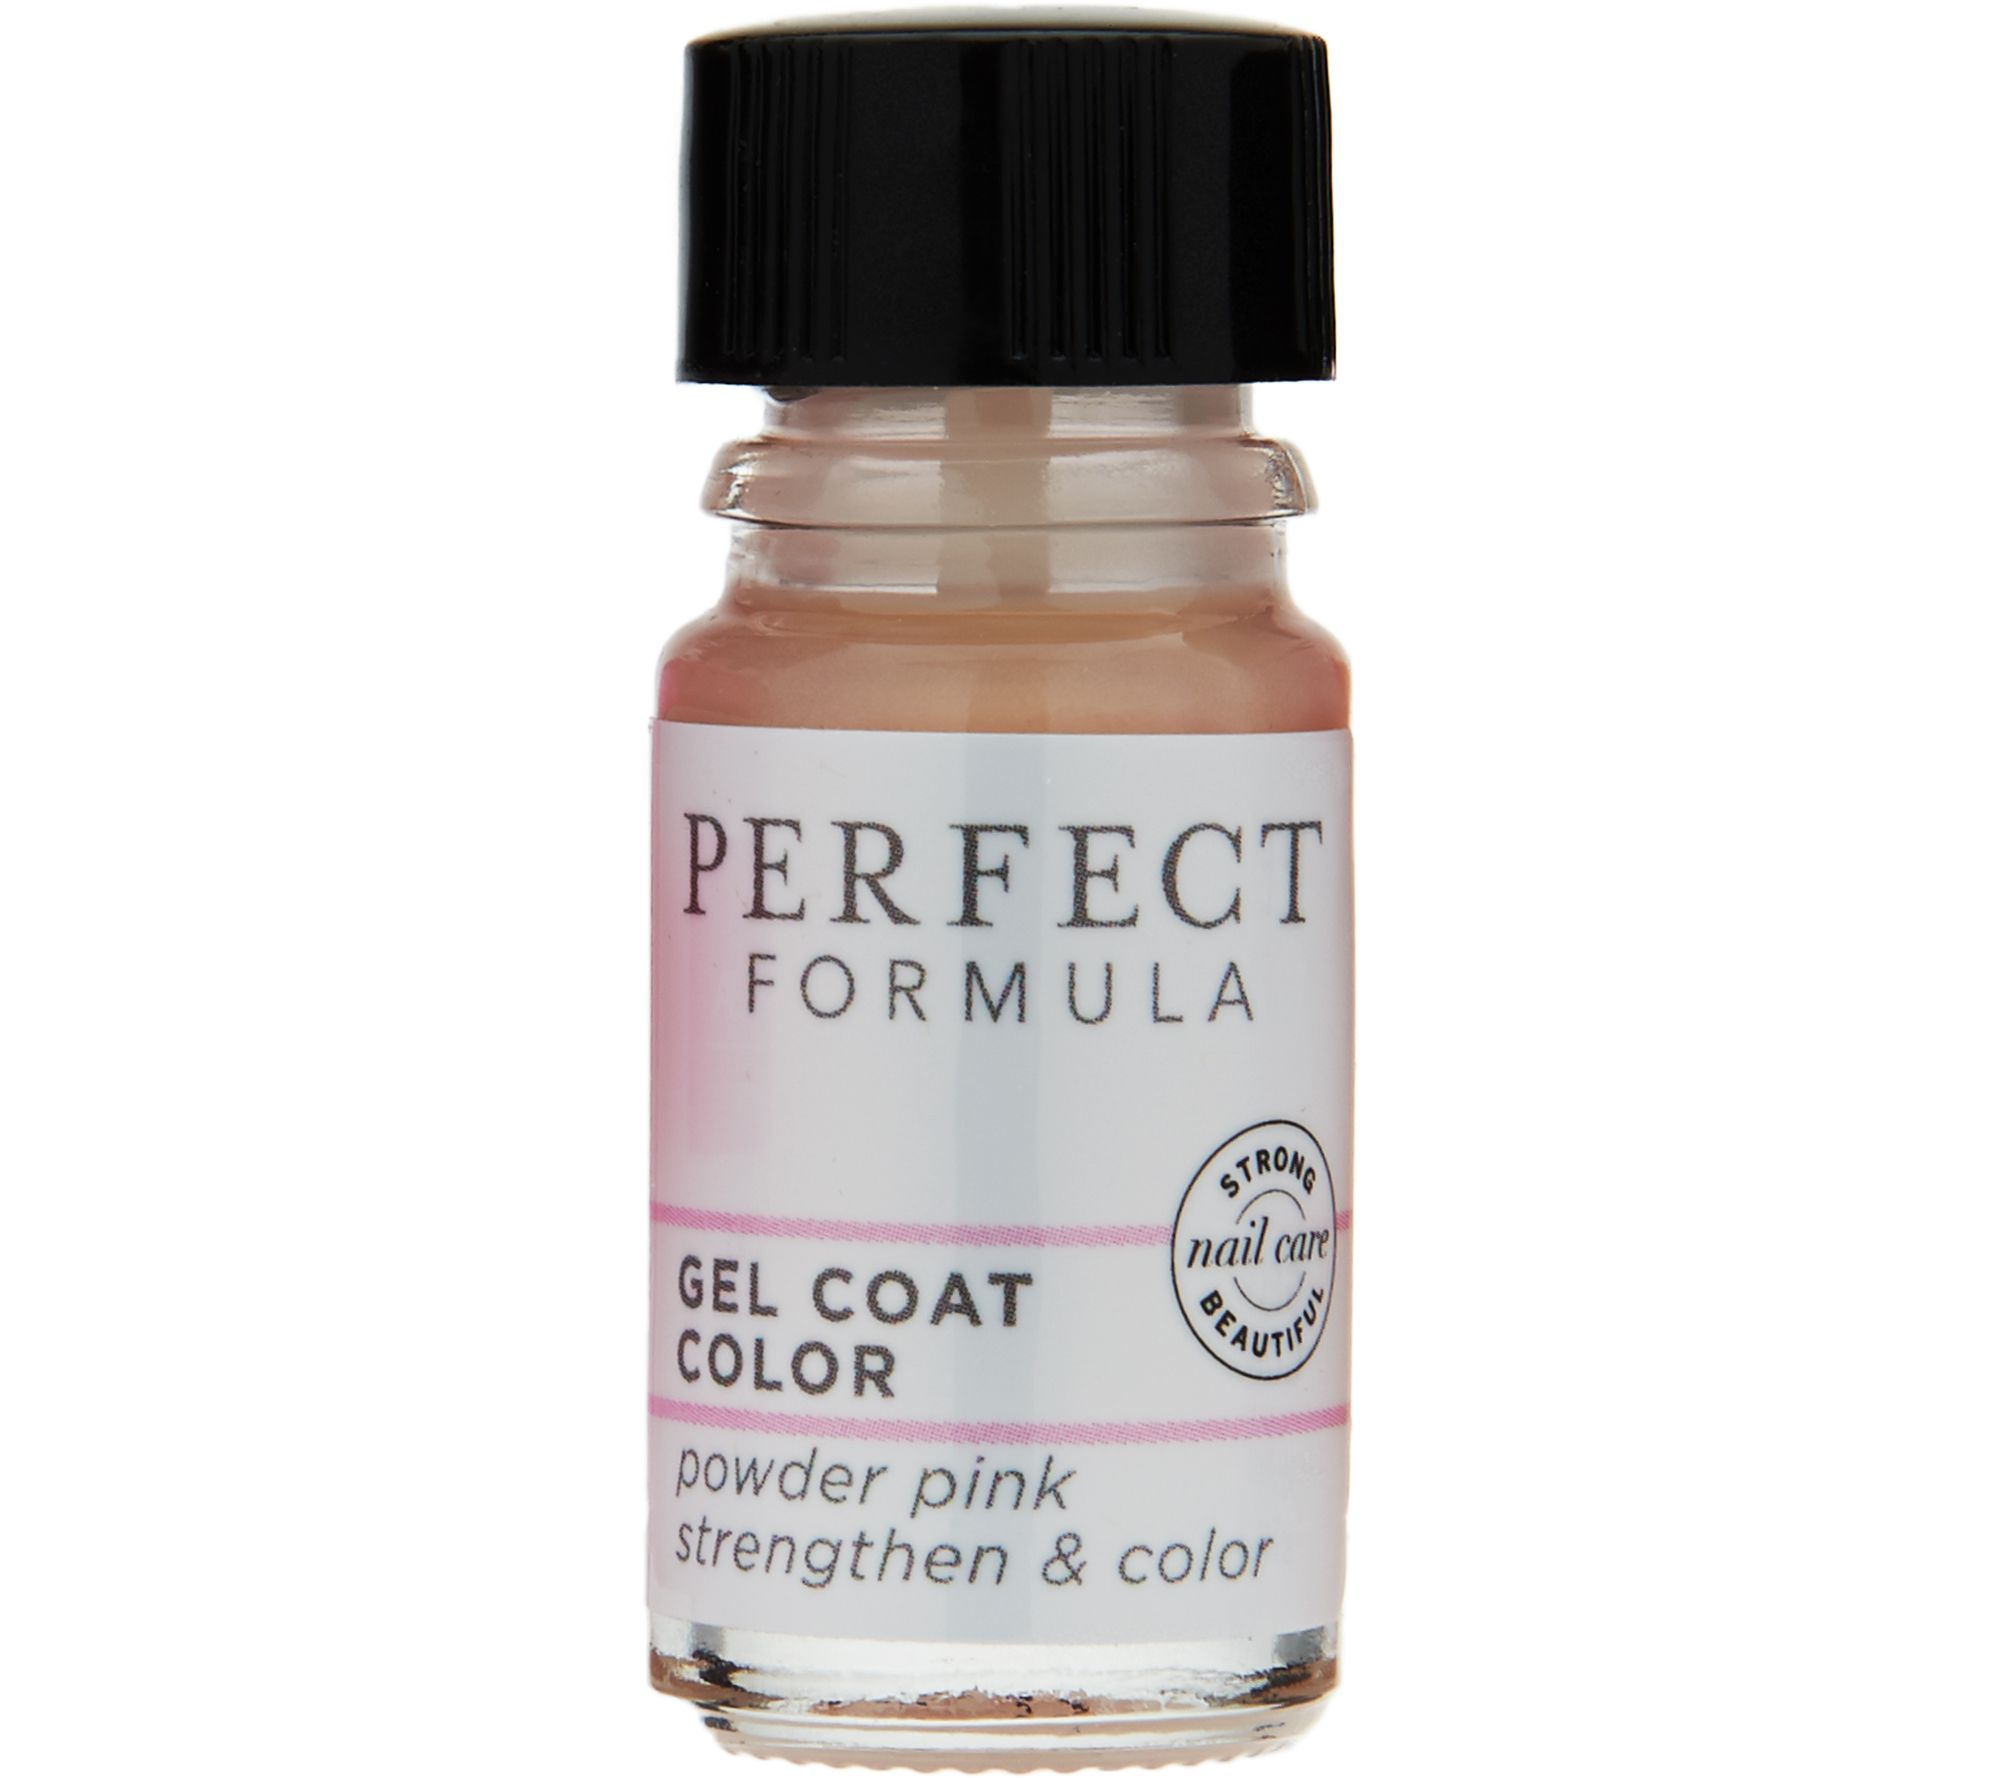 Perfect Formula 5-piece Gel Coat Collection w/ File - Page 1 — QVC.com